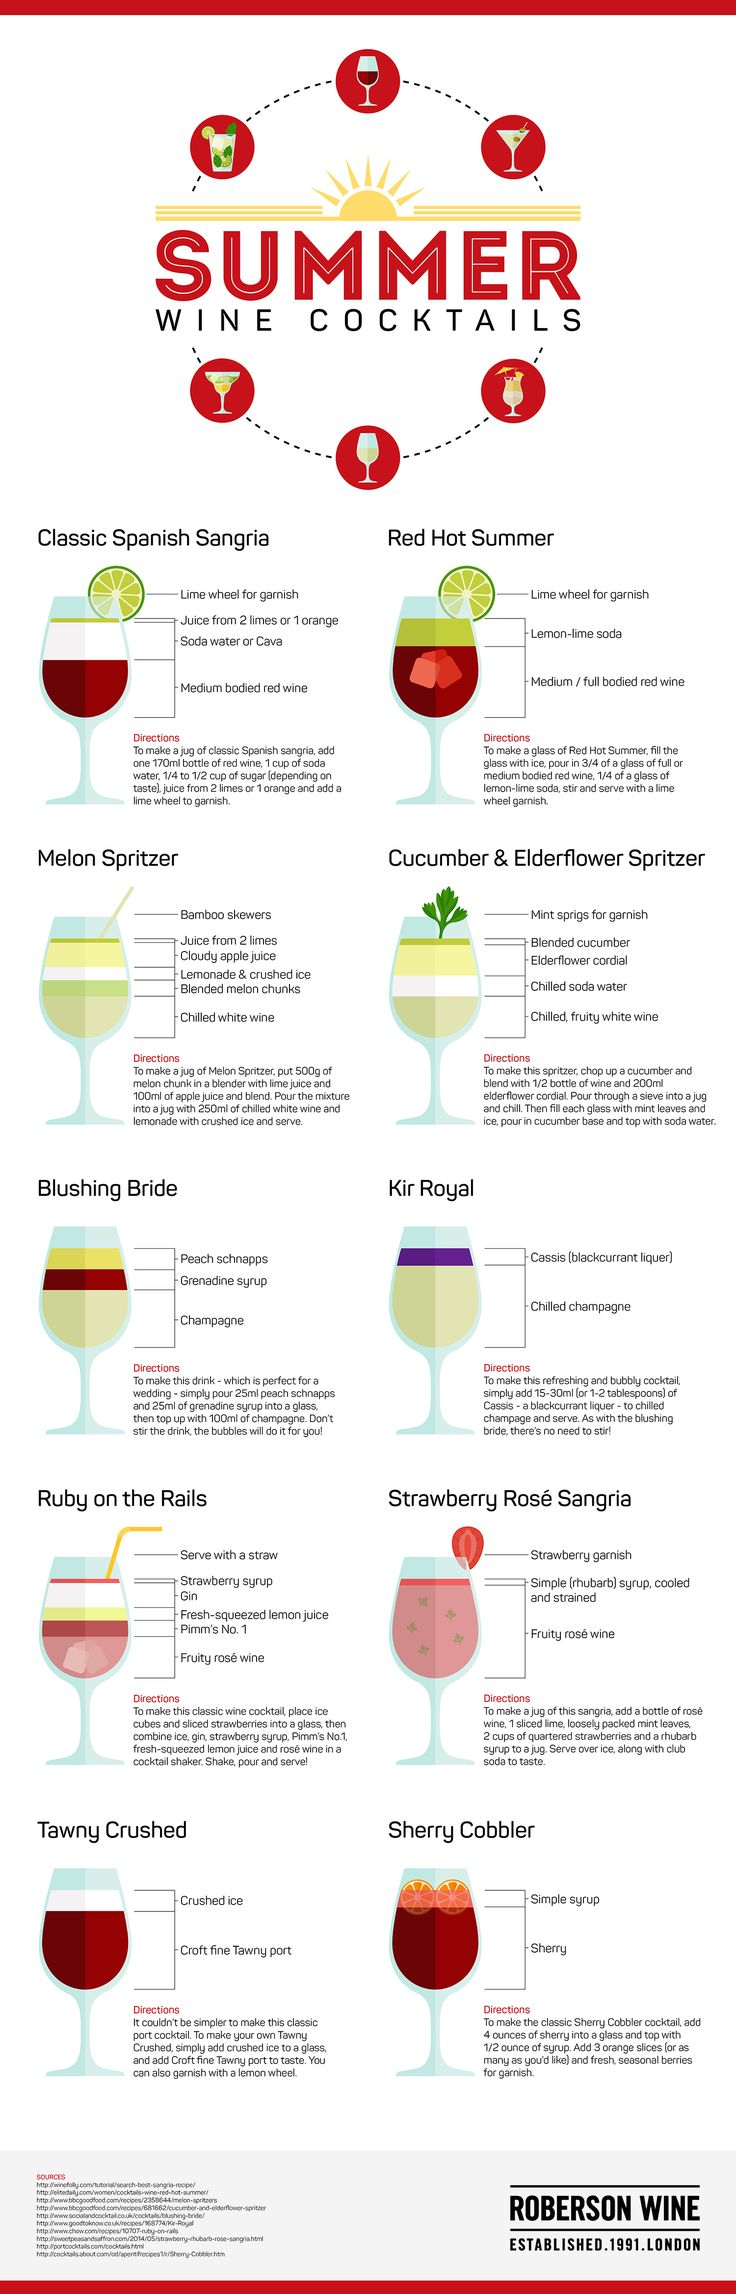 Summer Wine Cocktails - An Infographic - Roberson Wine